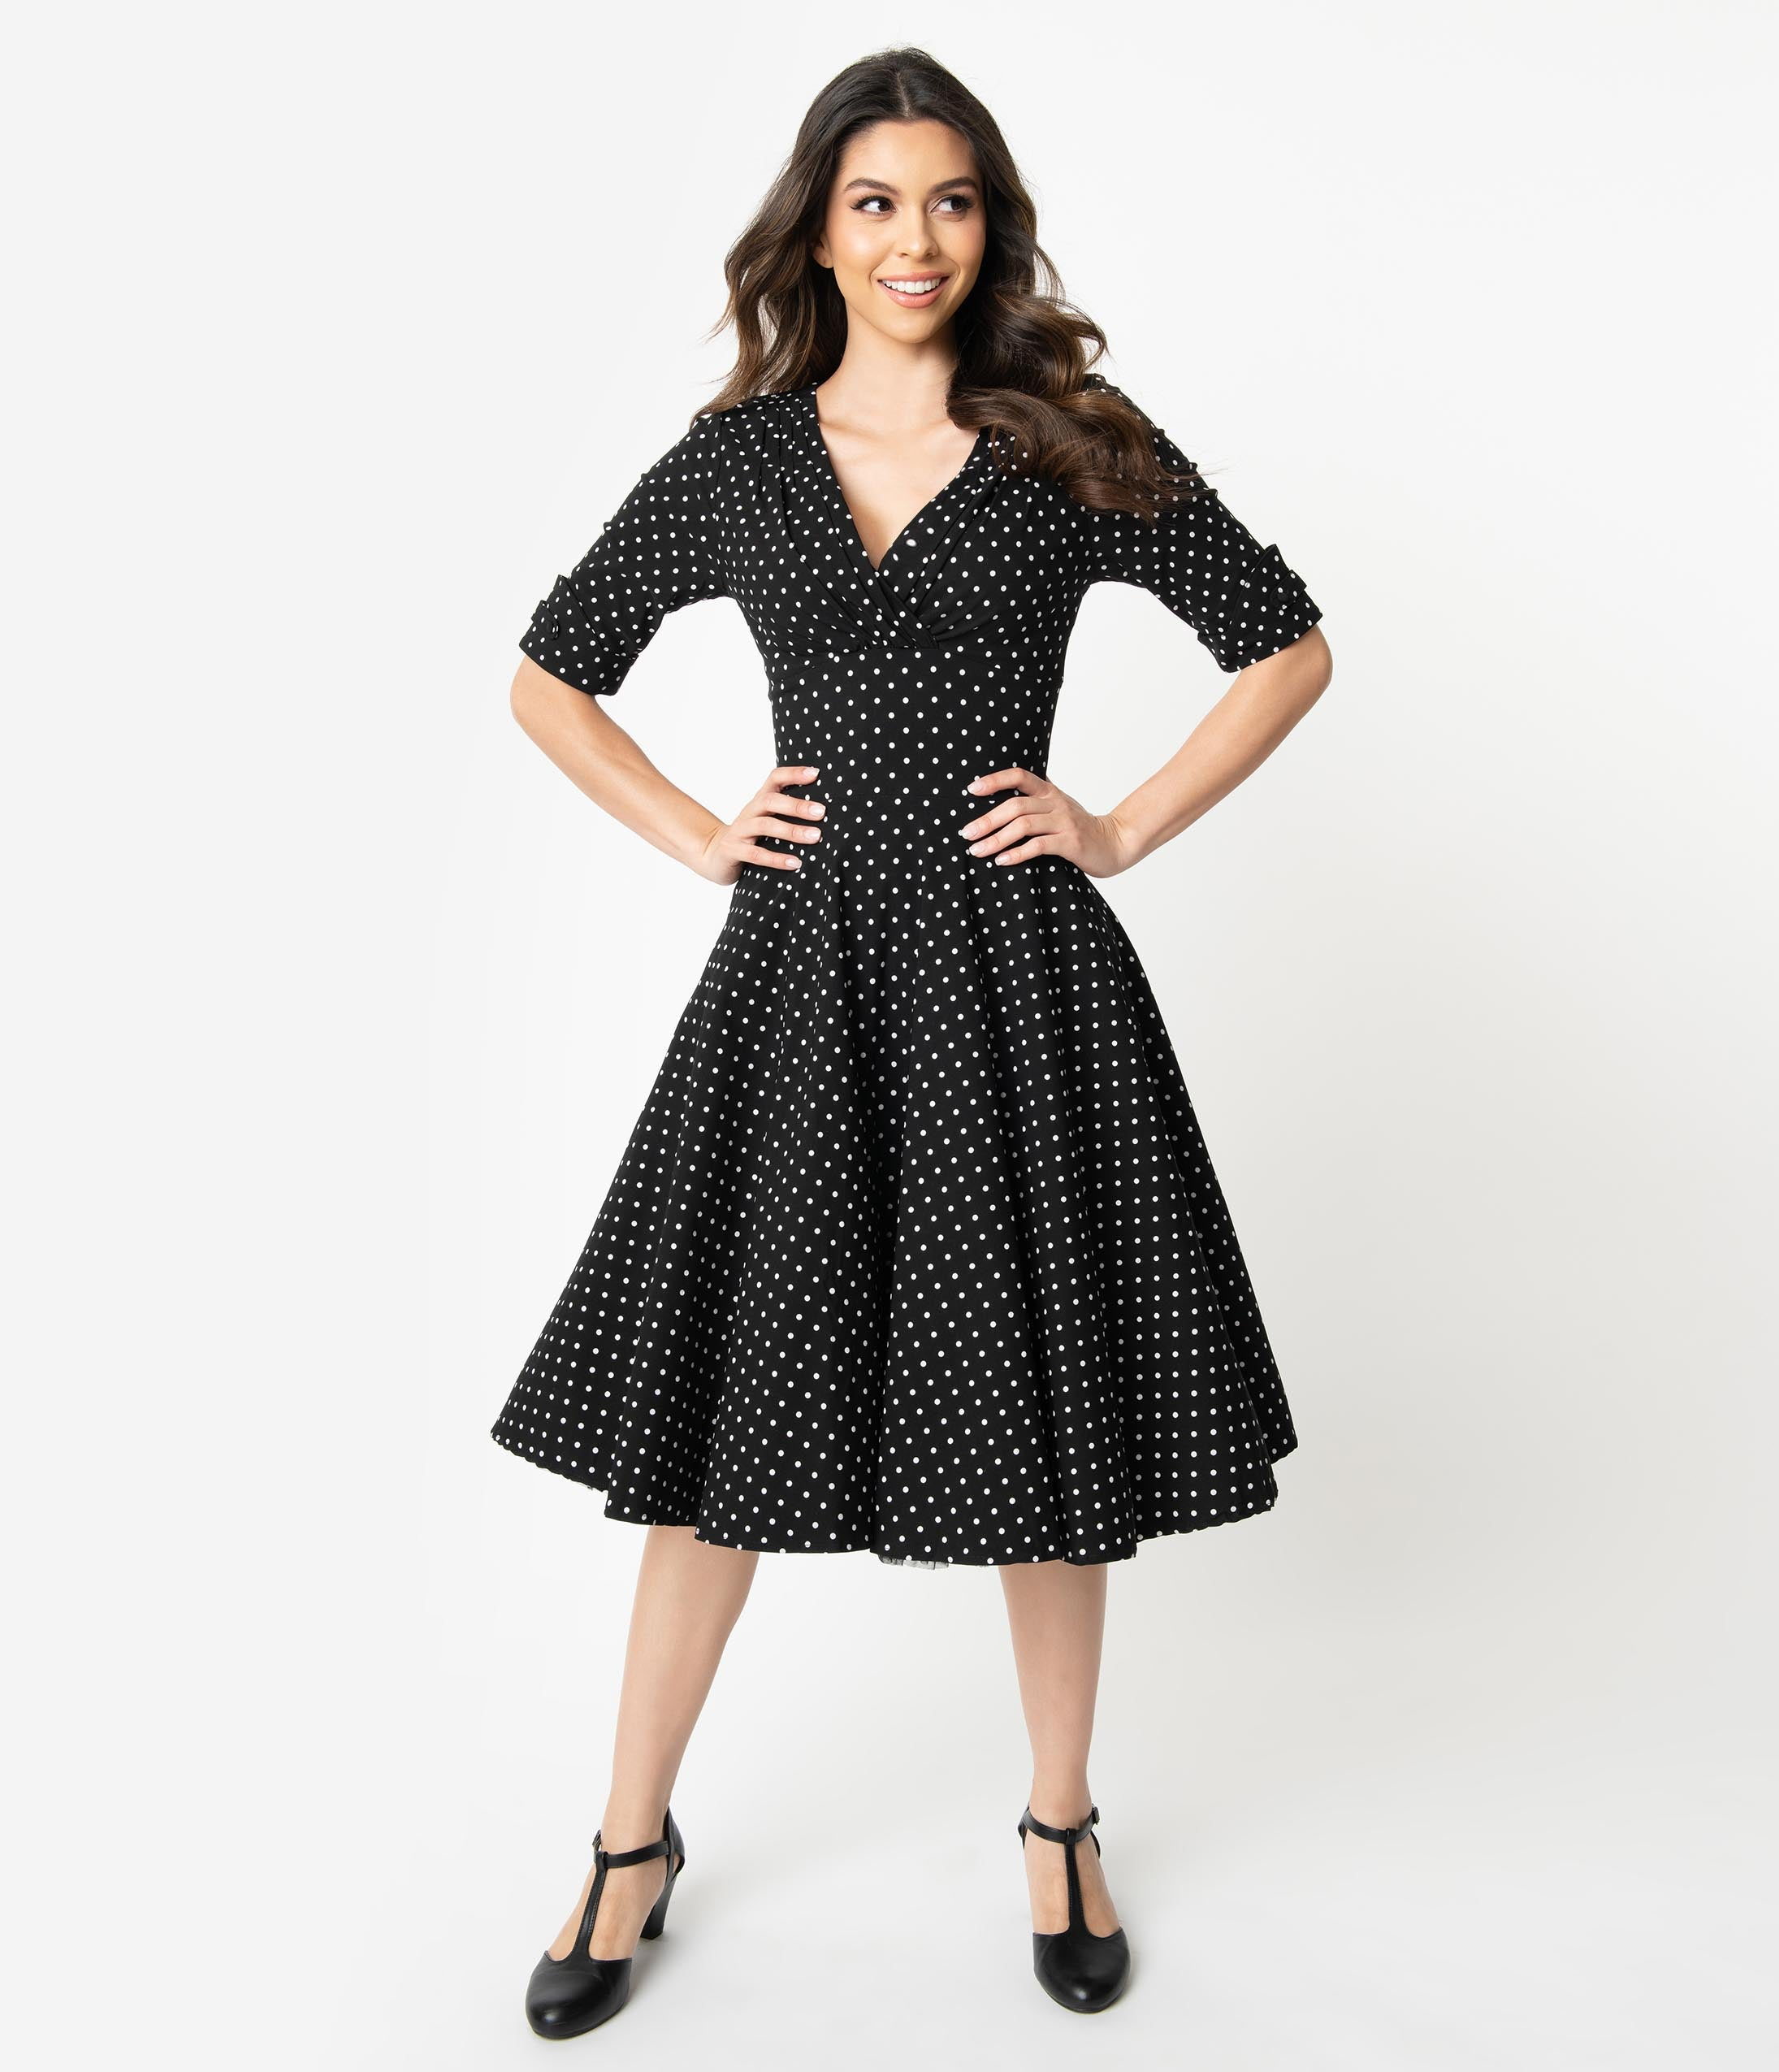 500 Vintage Style Dresses for Sale | Vintage Inspired Dresses Unique Vintage 1950S Black  White Dot Delores Swing Dress With Sleeves $92.00 AT vintagedancer.com